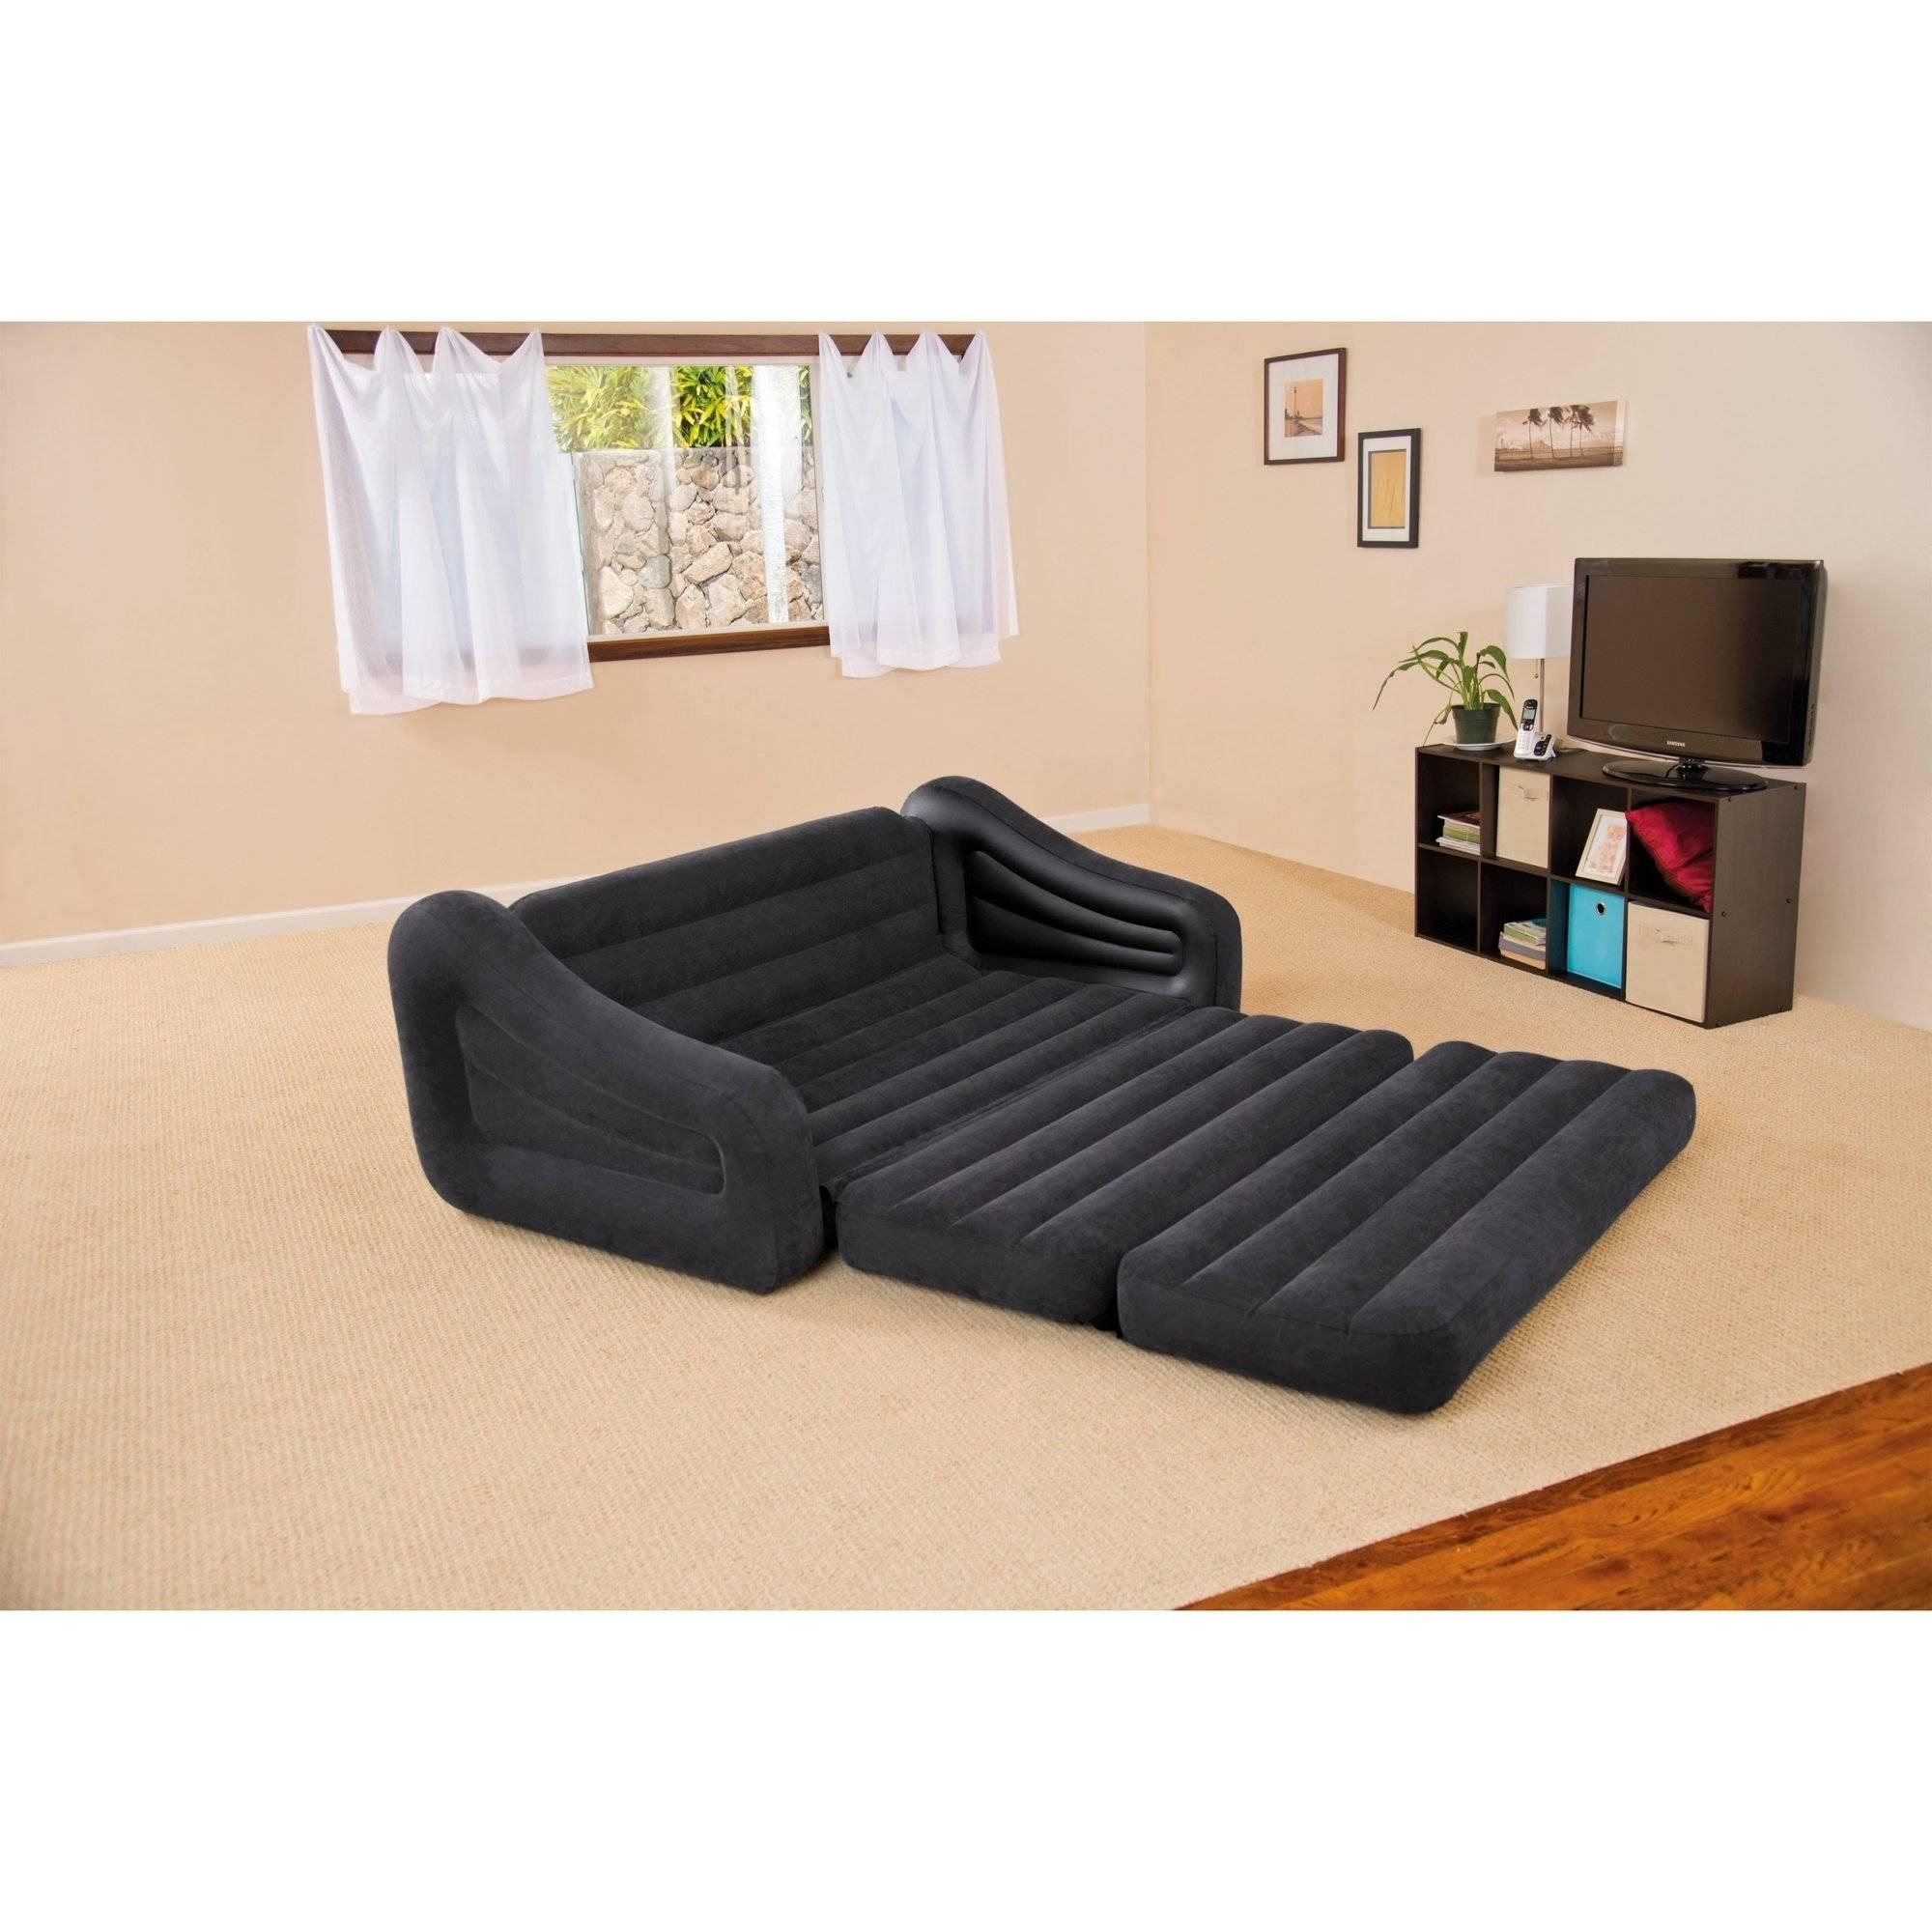 Intex Queen Inflatable Pull Out Sofa Bed - Walmart within Intex Air Couches